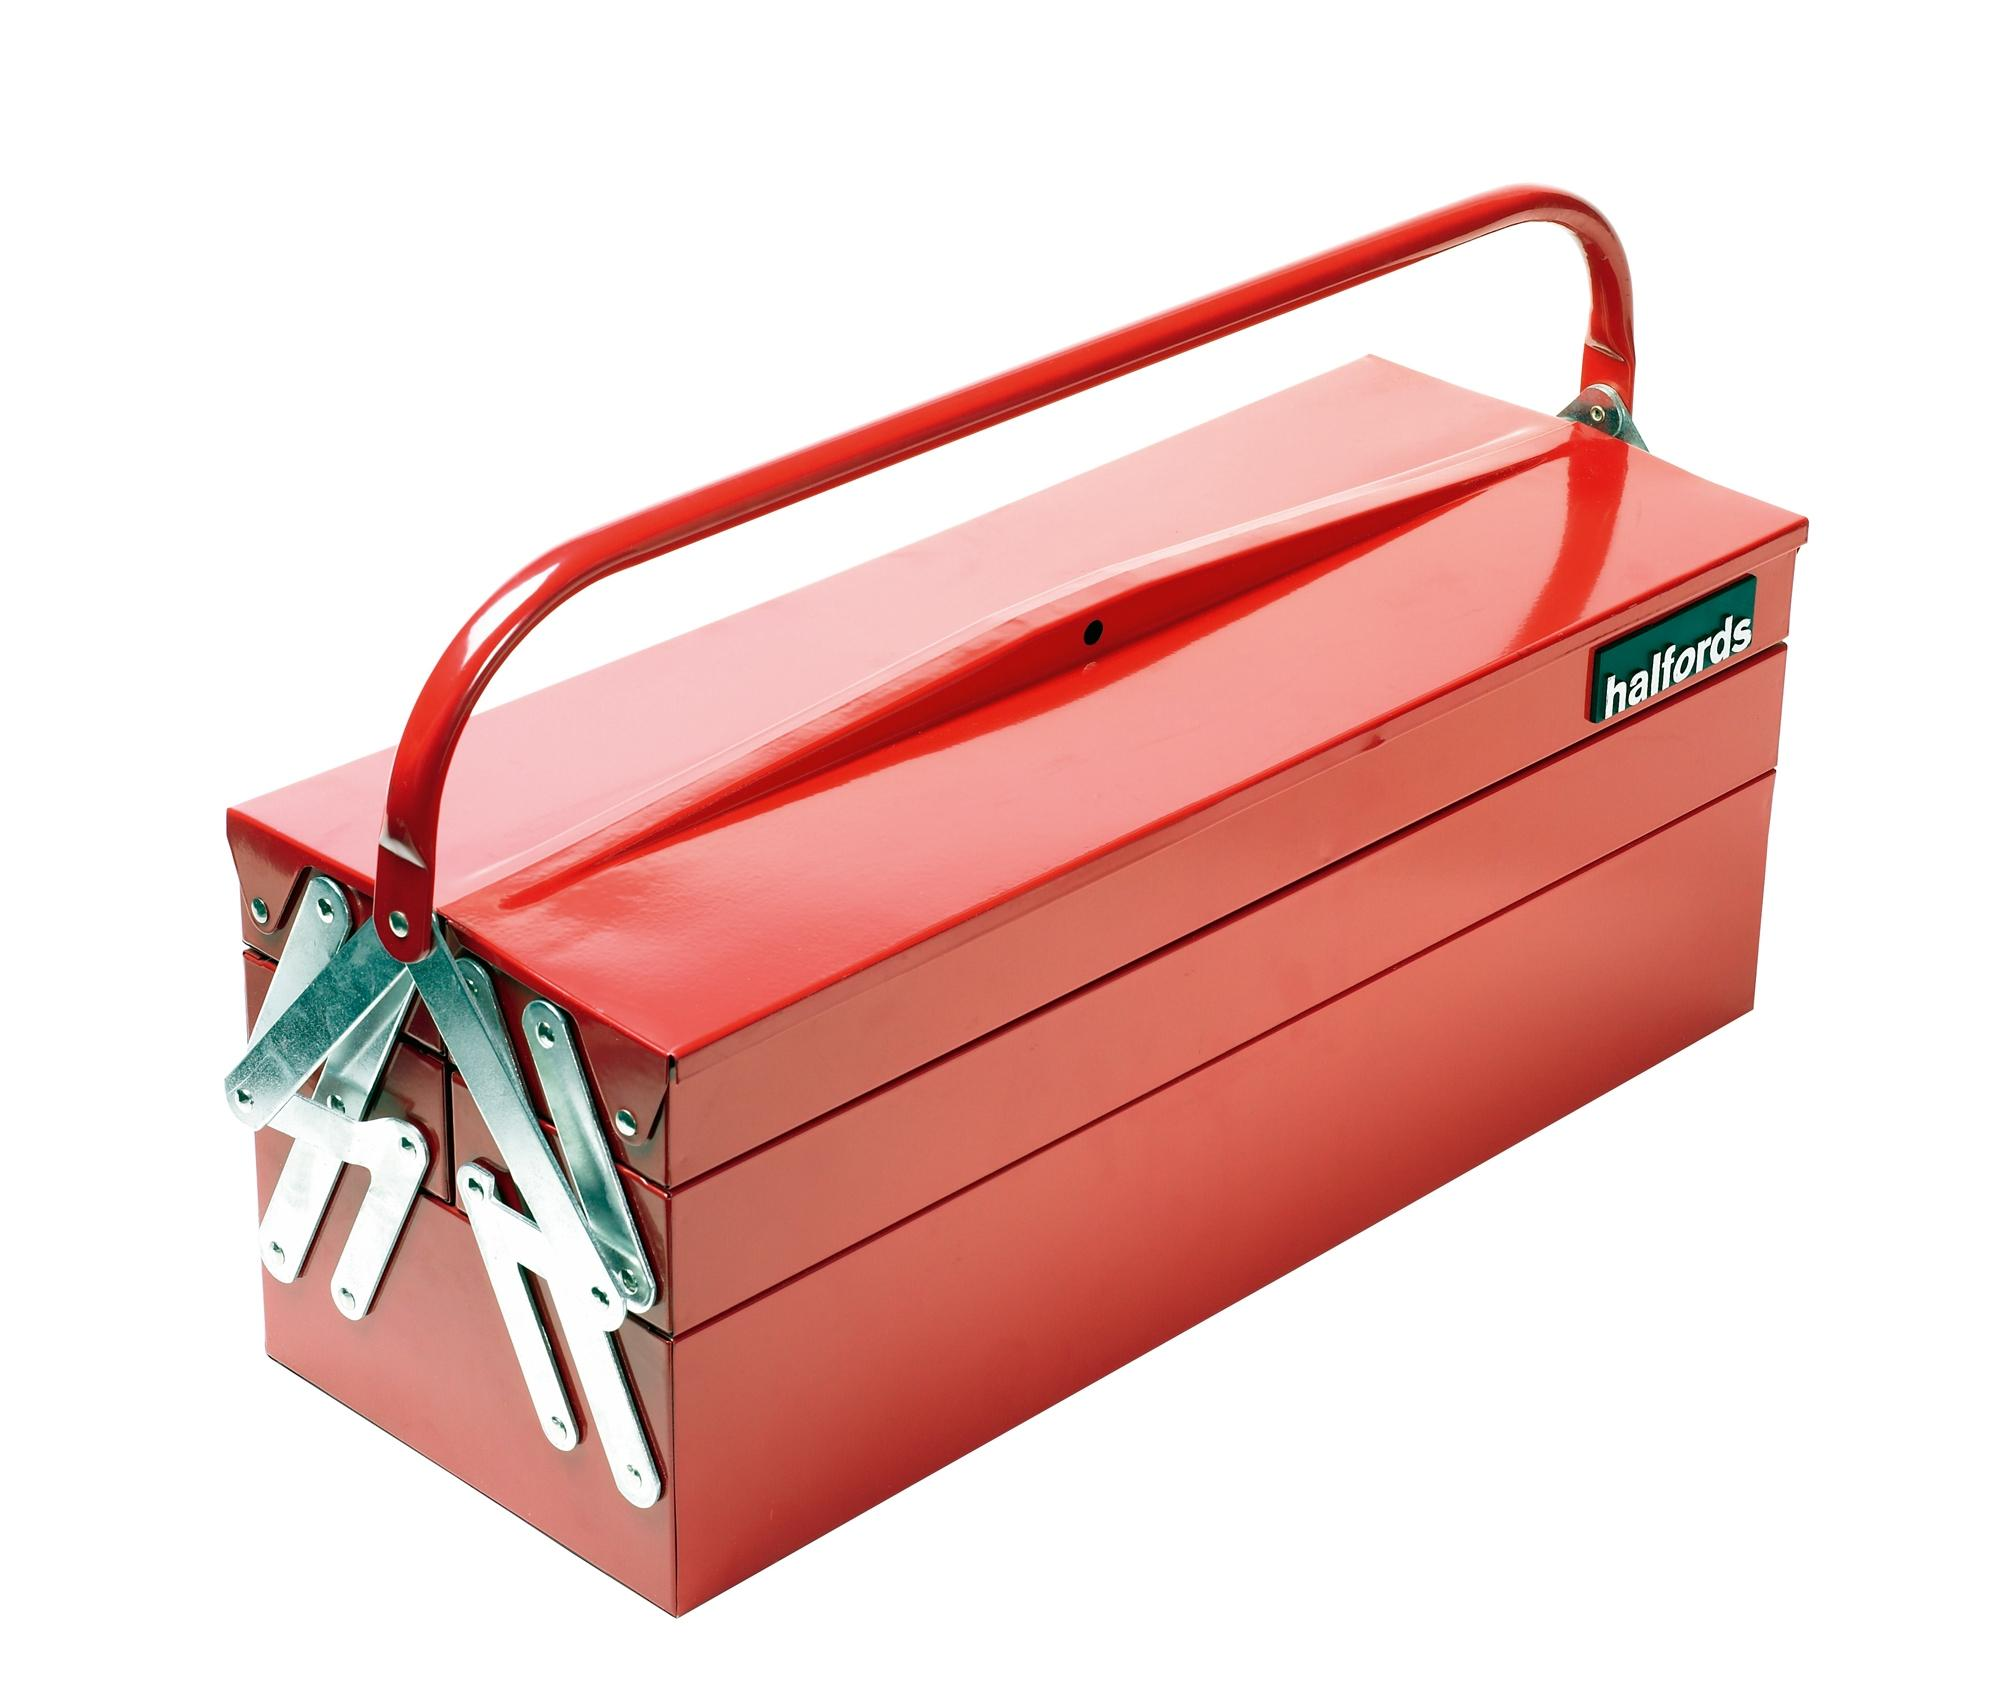 halfords professional cantilever tool box red 5 trays. Black Bedroom Furniture Sets. Home Design Ideas